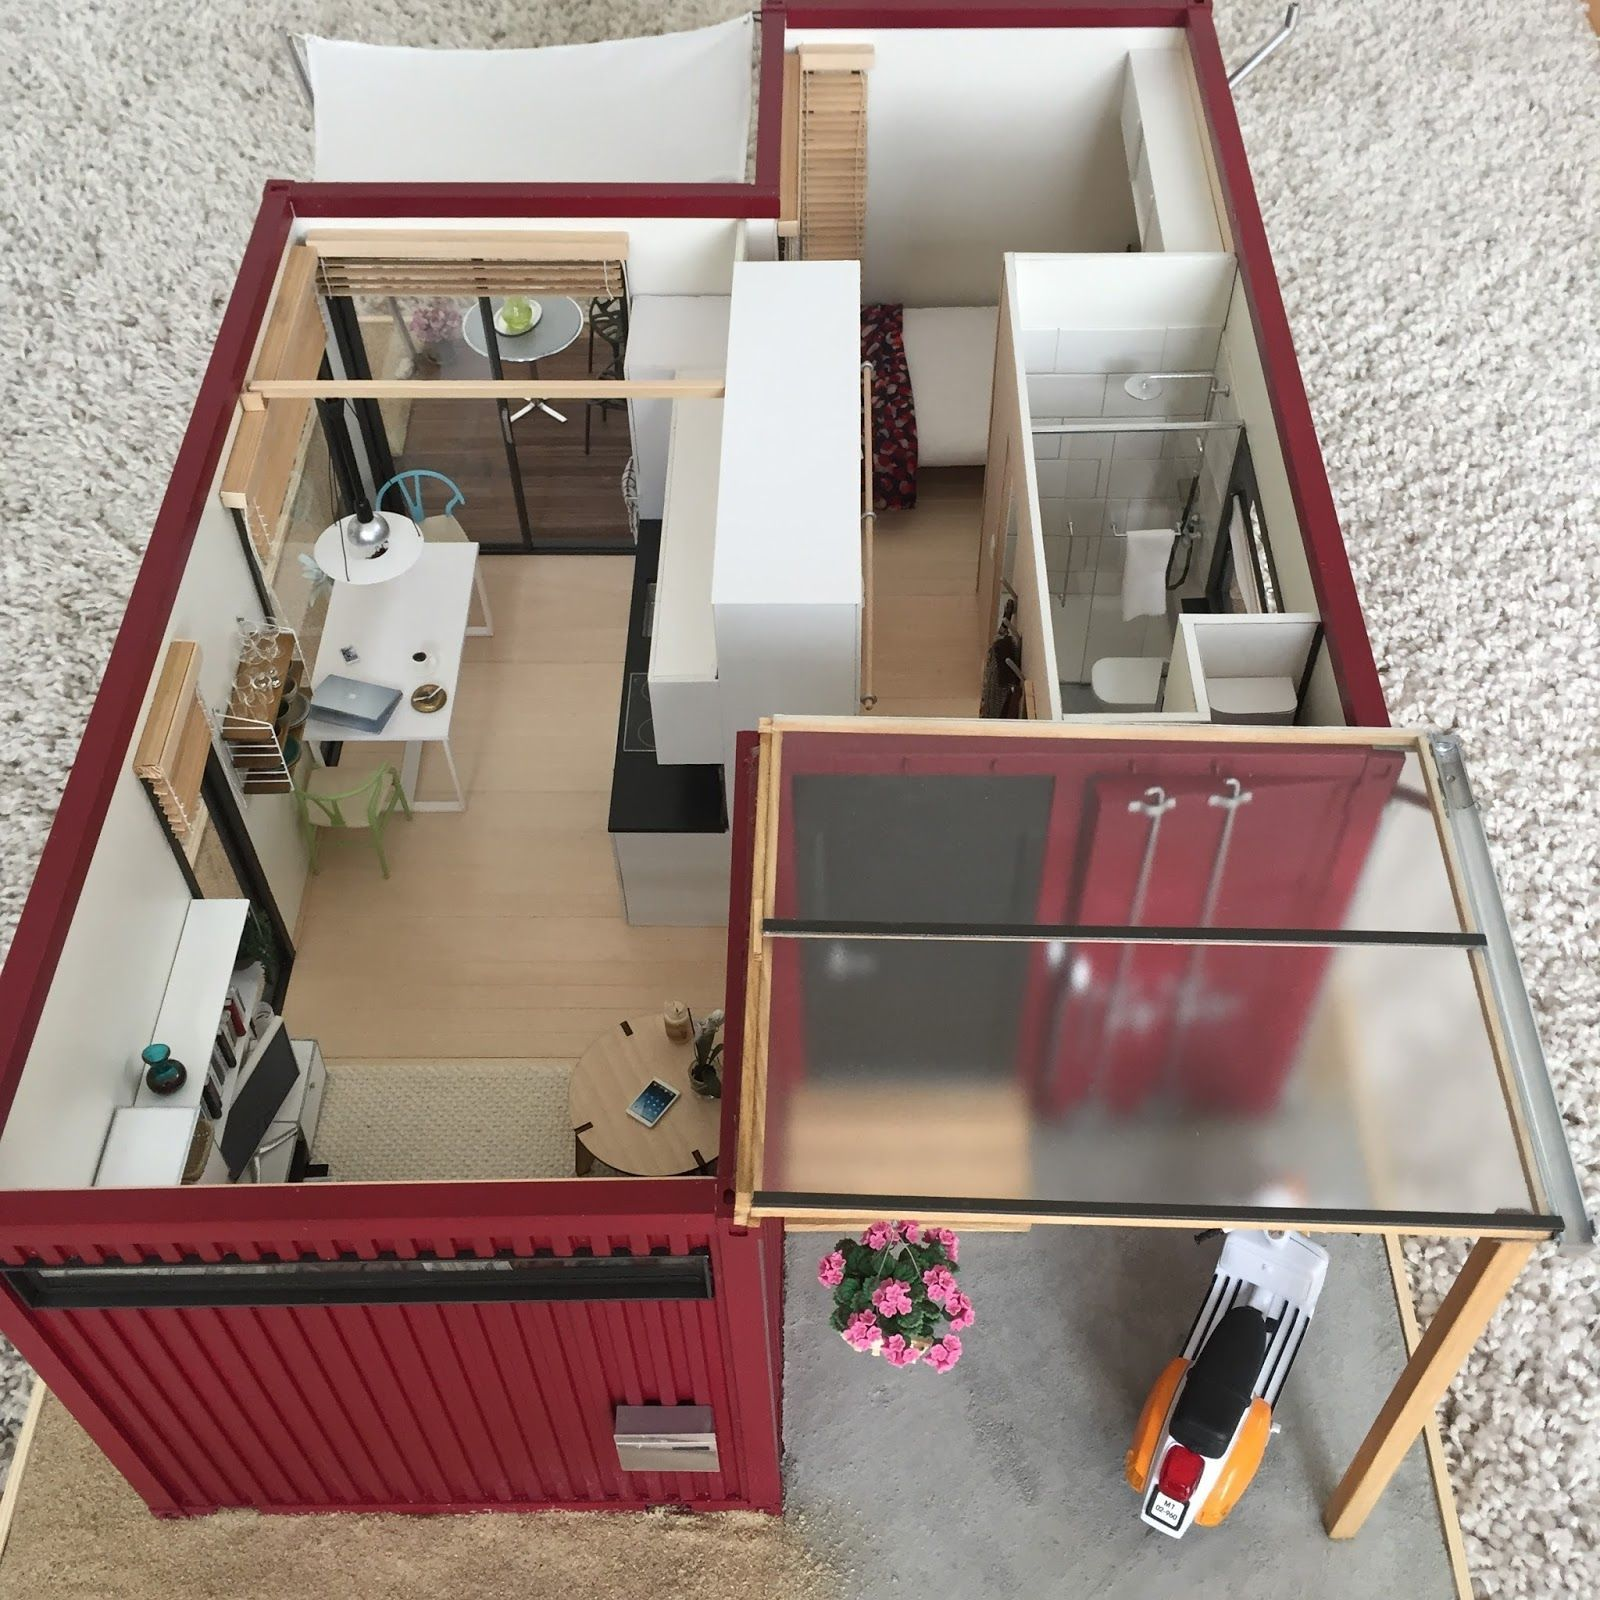 1:12 Scale Modern Model Houses: 1:12 Scale Shipping Container House  Completed